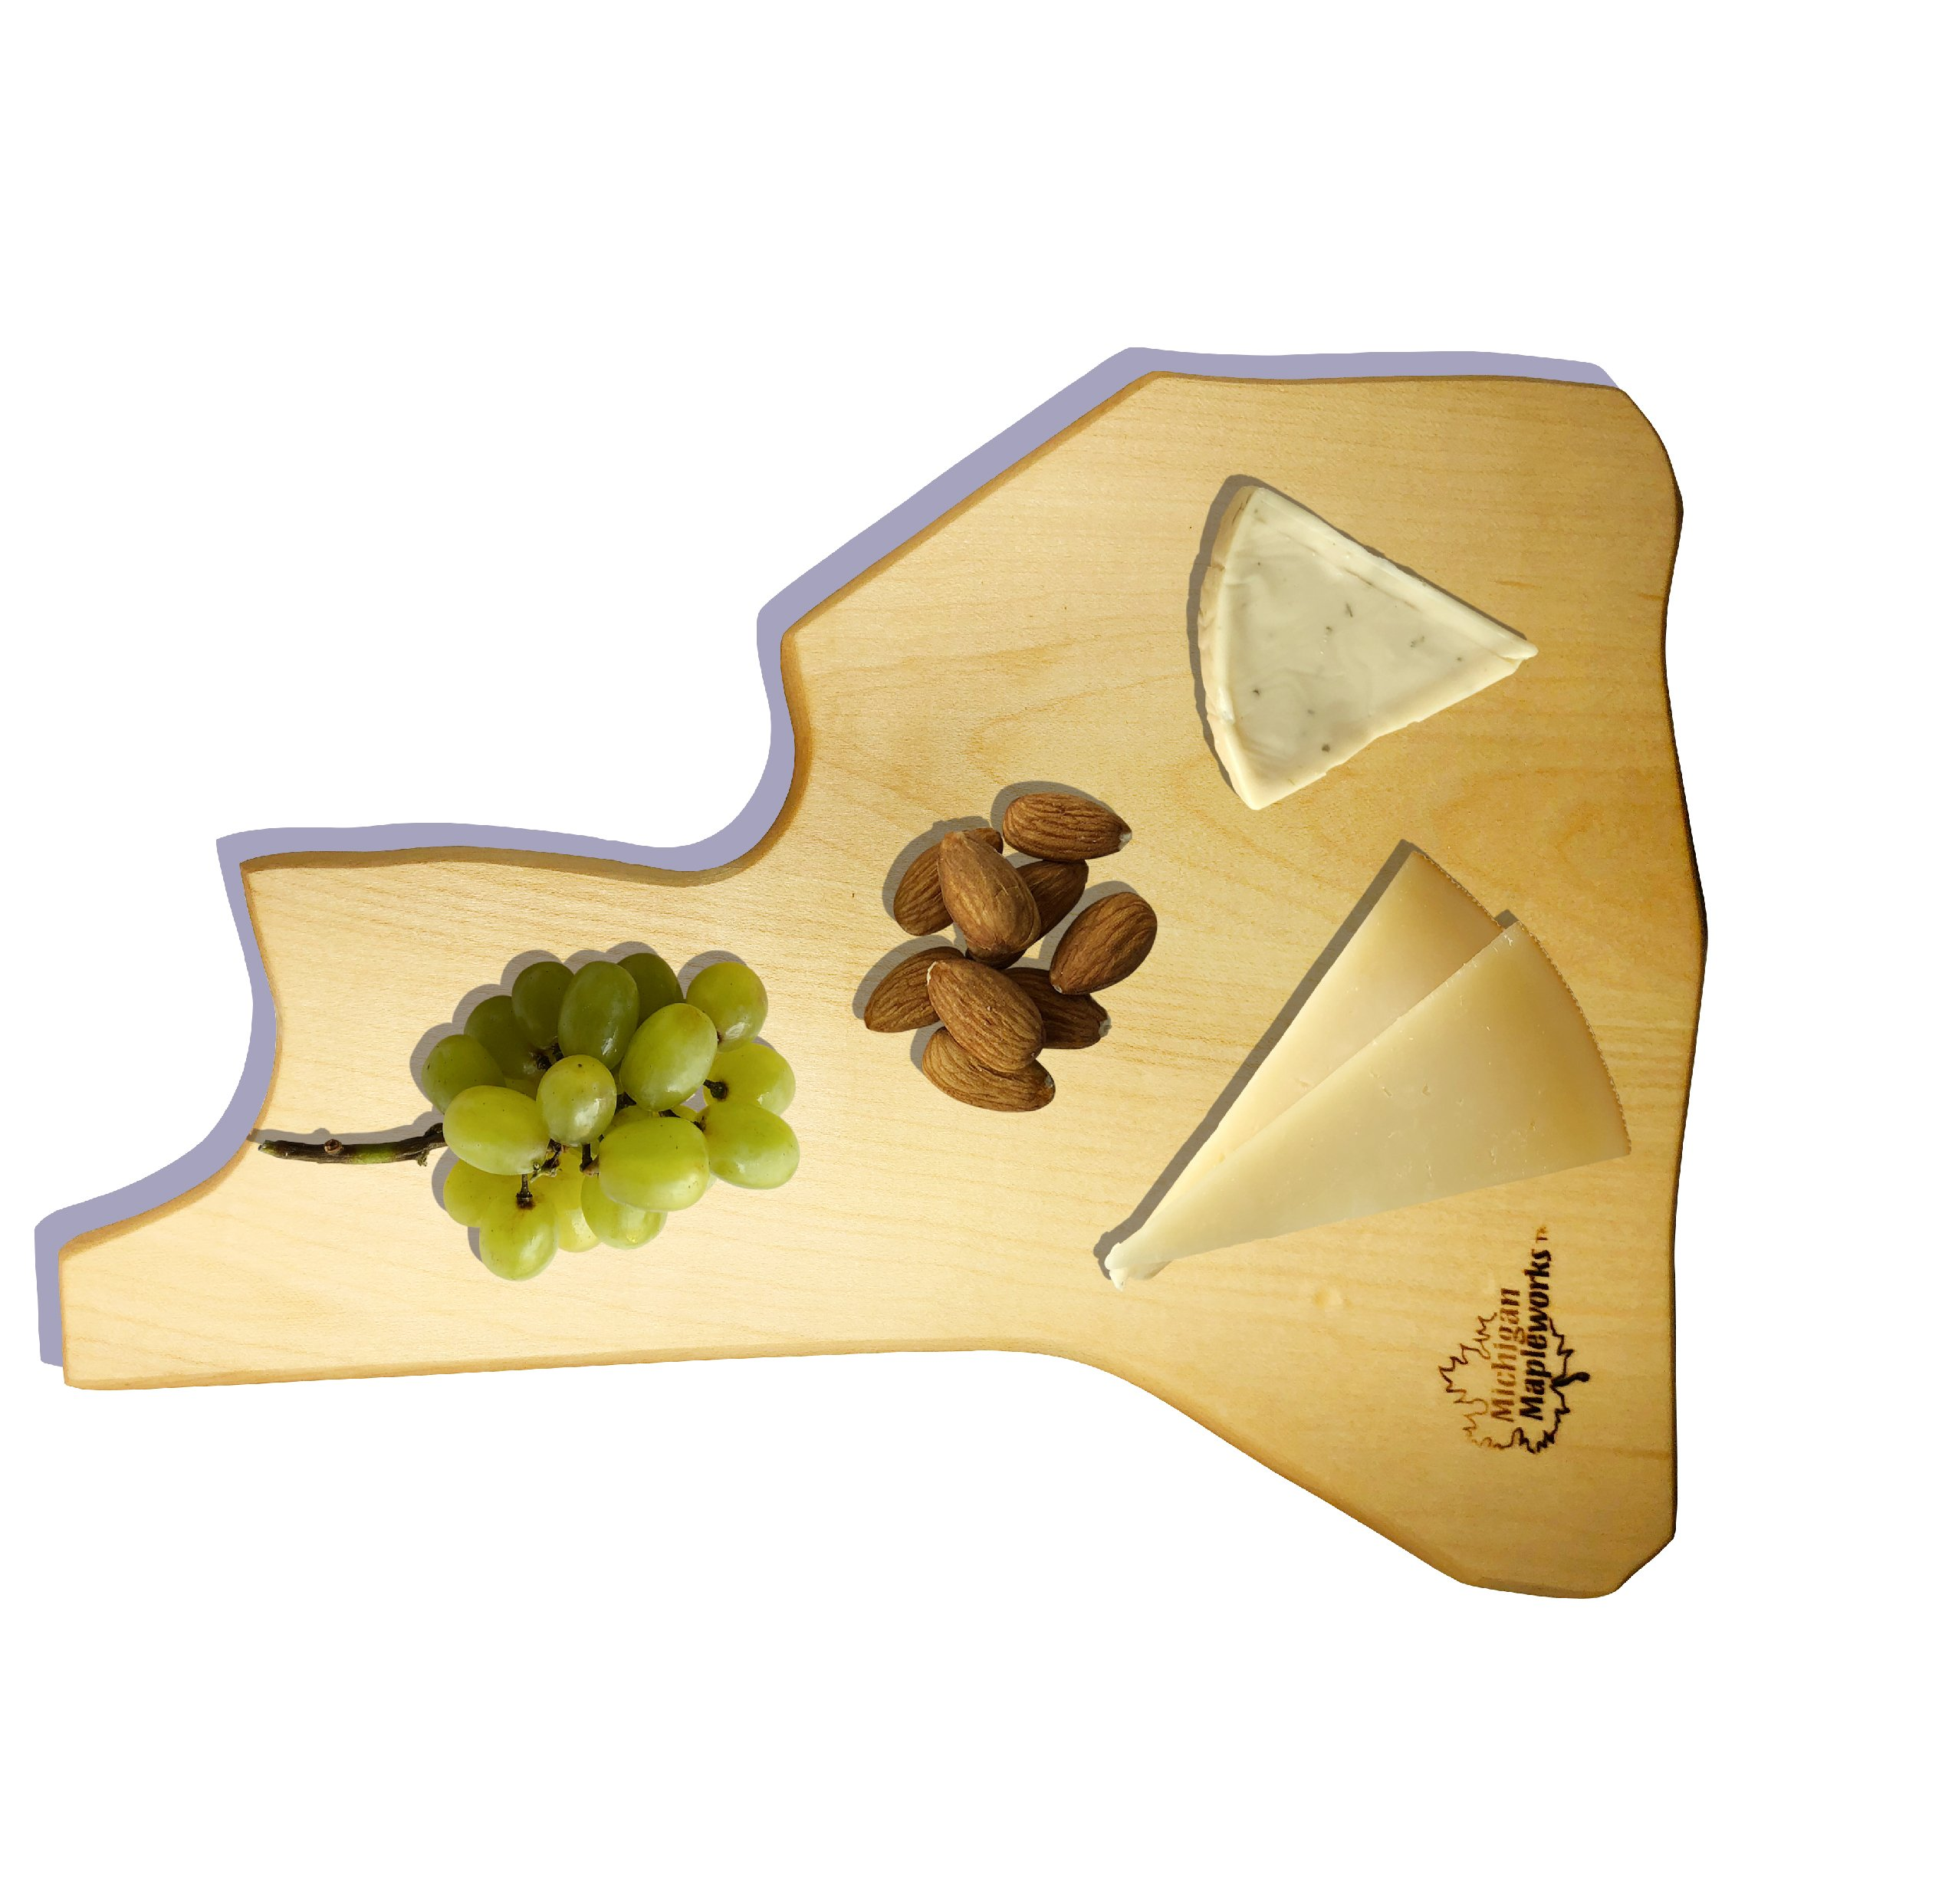 NEW YORK Maple Wood Cutting Board Set & NewYork Gift Made in USA | New York Souvenir for a Nice Home decor or State Serving Board & Cheese tray | Chopping Block with Wood Knife Spreader